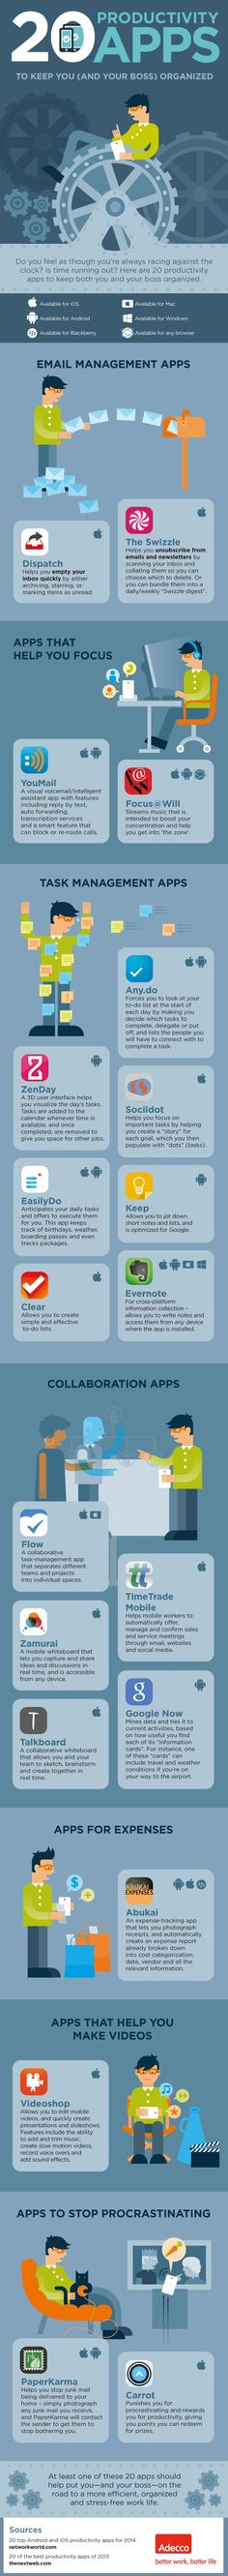 20 Productivity Apps to Keep You Organized #ios #apps #edtech #technology